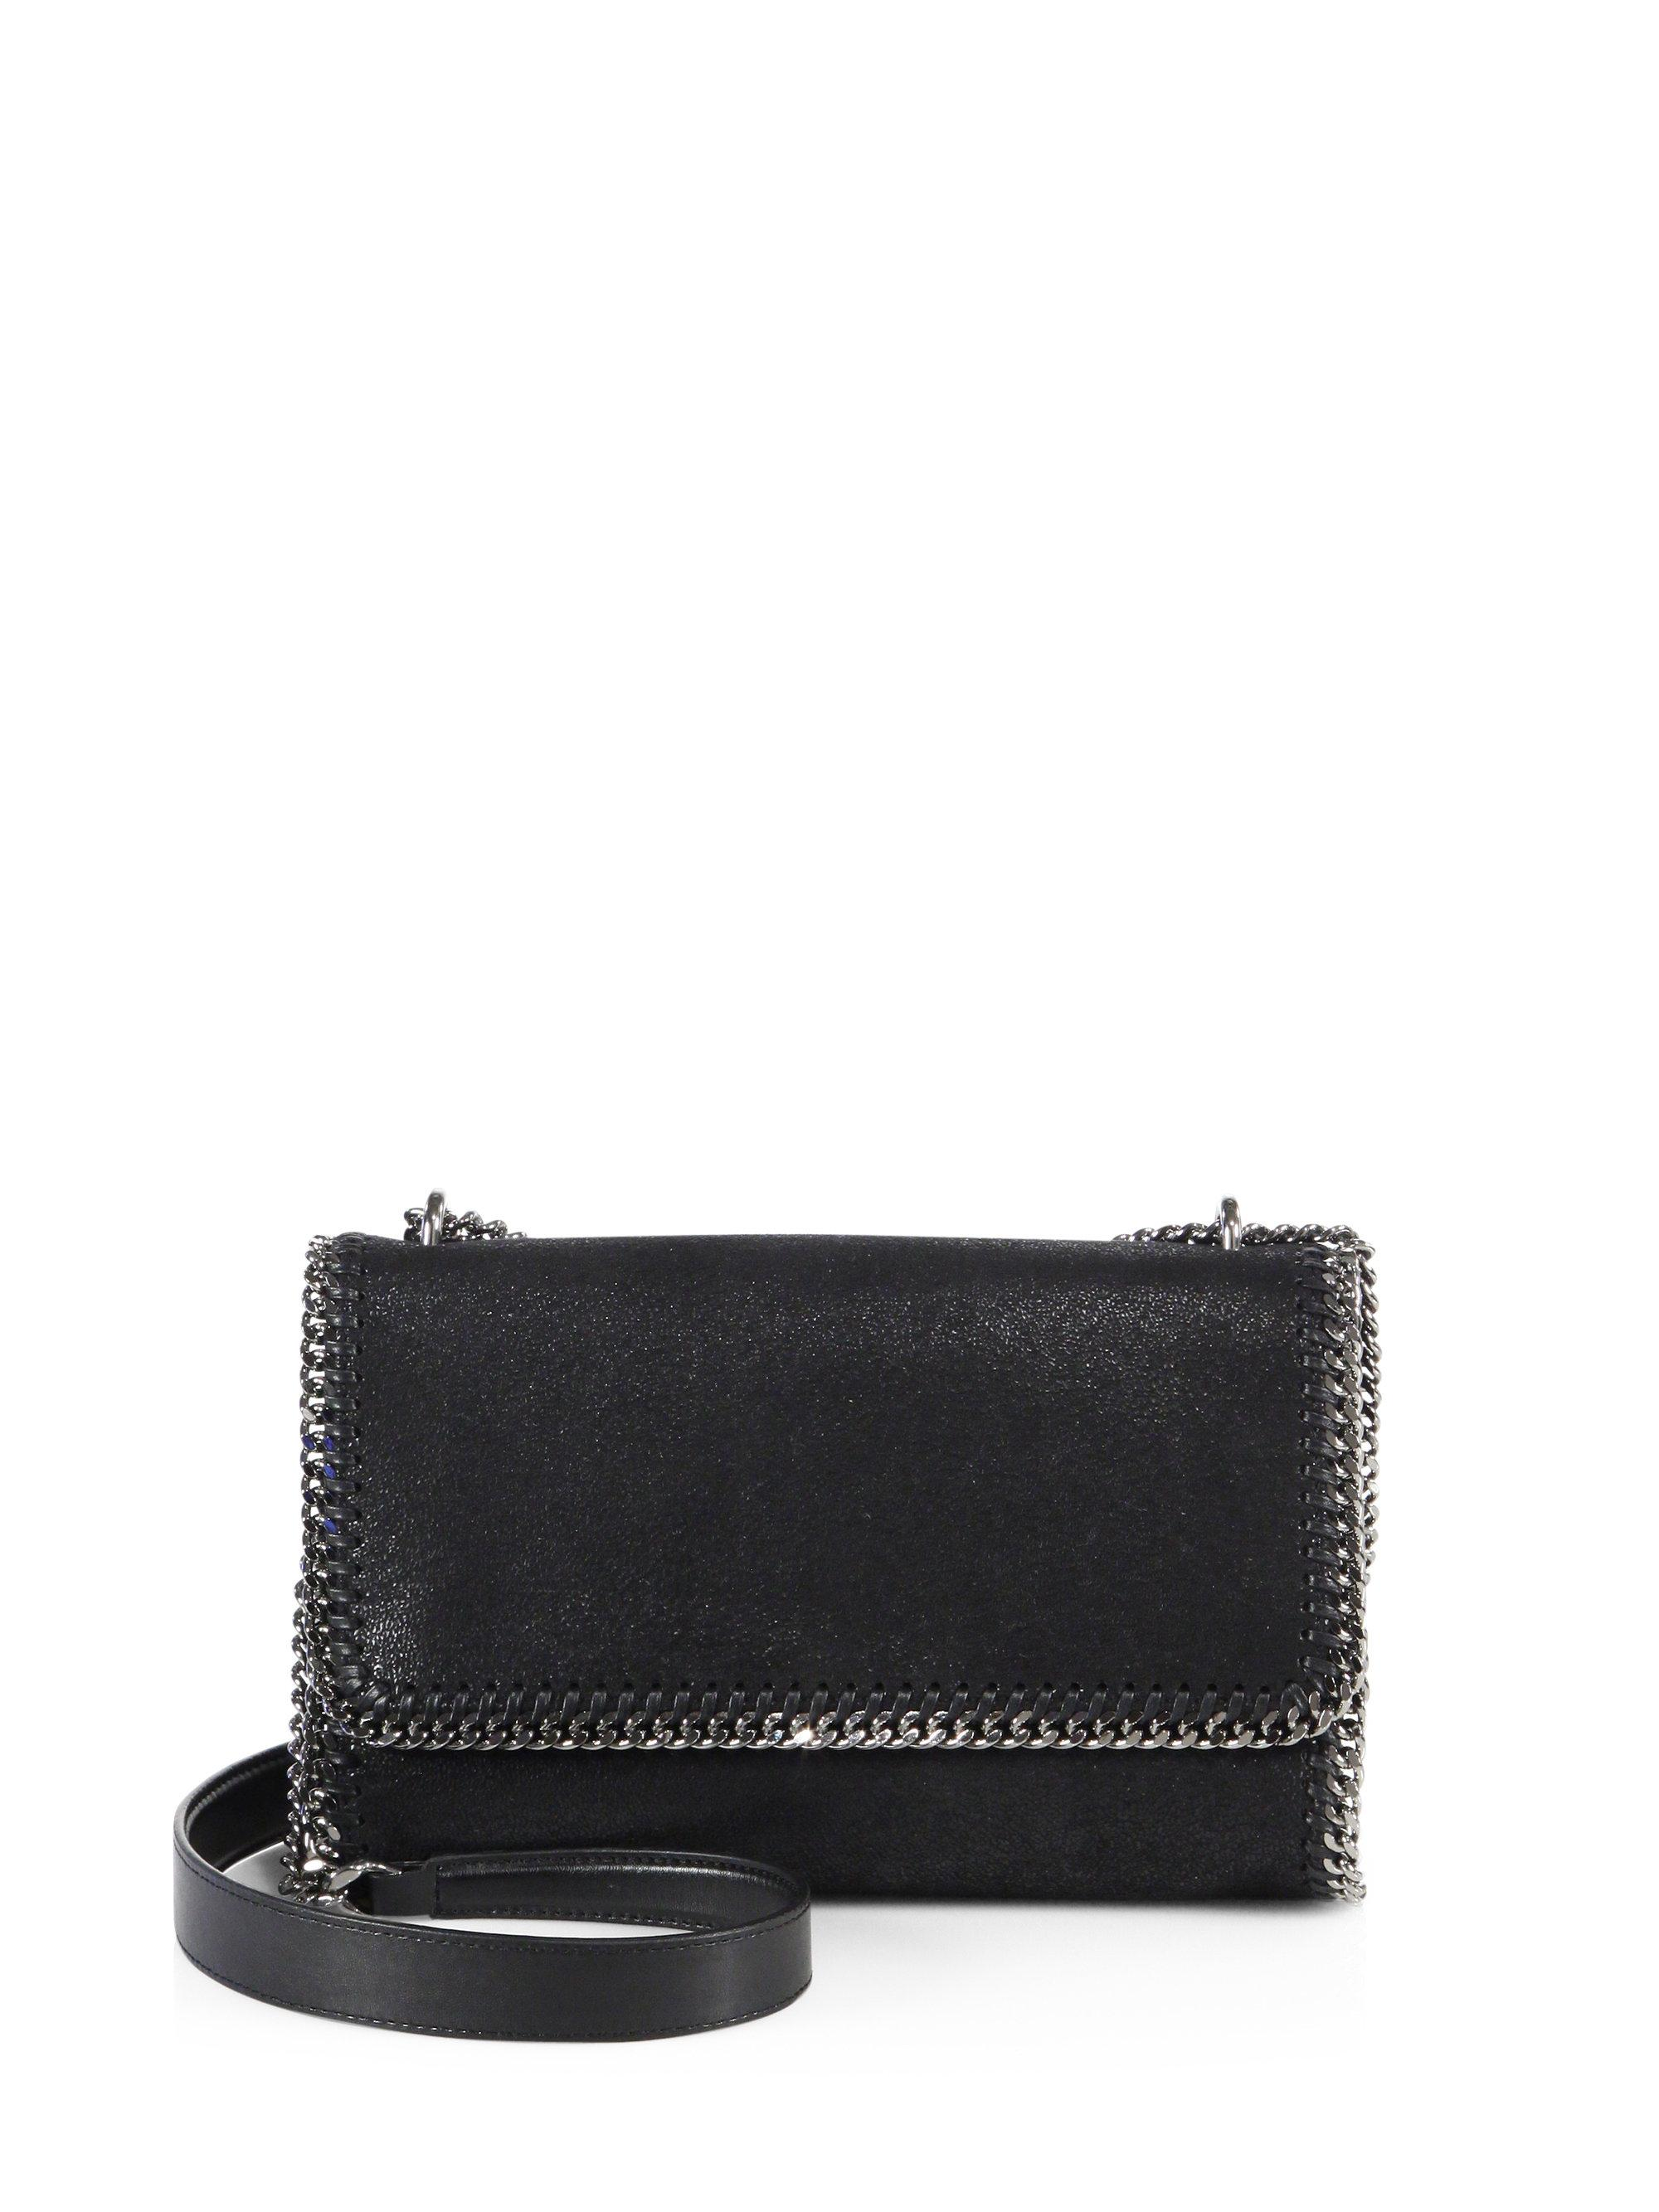 8be801965b2a Stella Mccartney Shaggy Deer Falabella Crossbody Bag in Black - Lyst